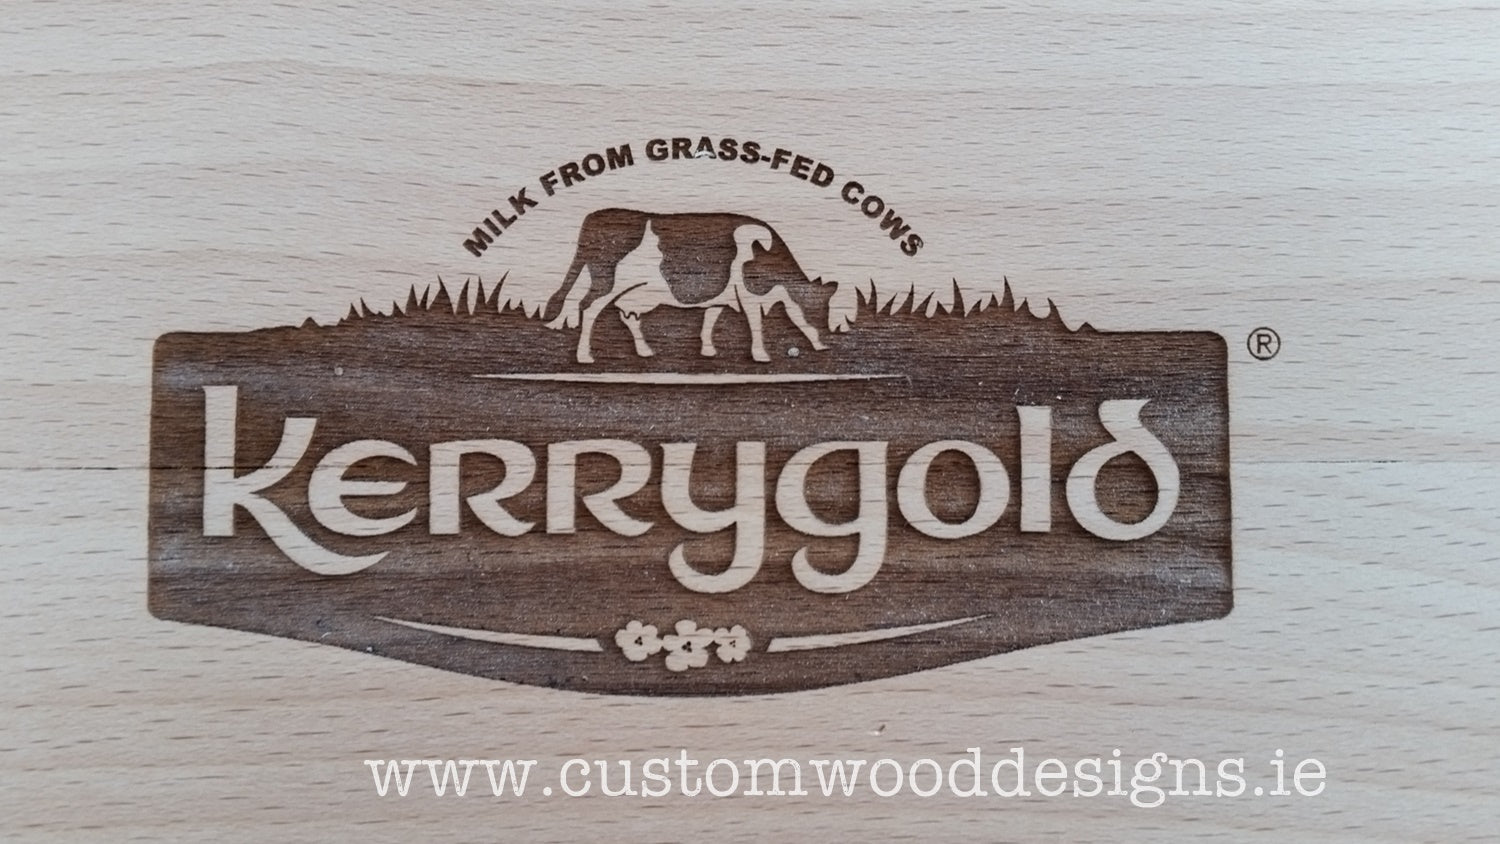 Kerry gold branding promotional laser engraving dublin sign maker logos Commercial furniture ireland joinery woodworking dubl;in uv printing custom made custom wood designs ie greenogue woodworking kitchen wood timber signage (8)